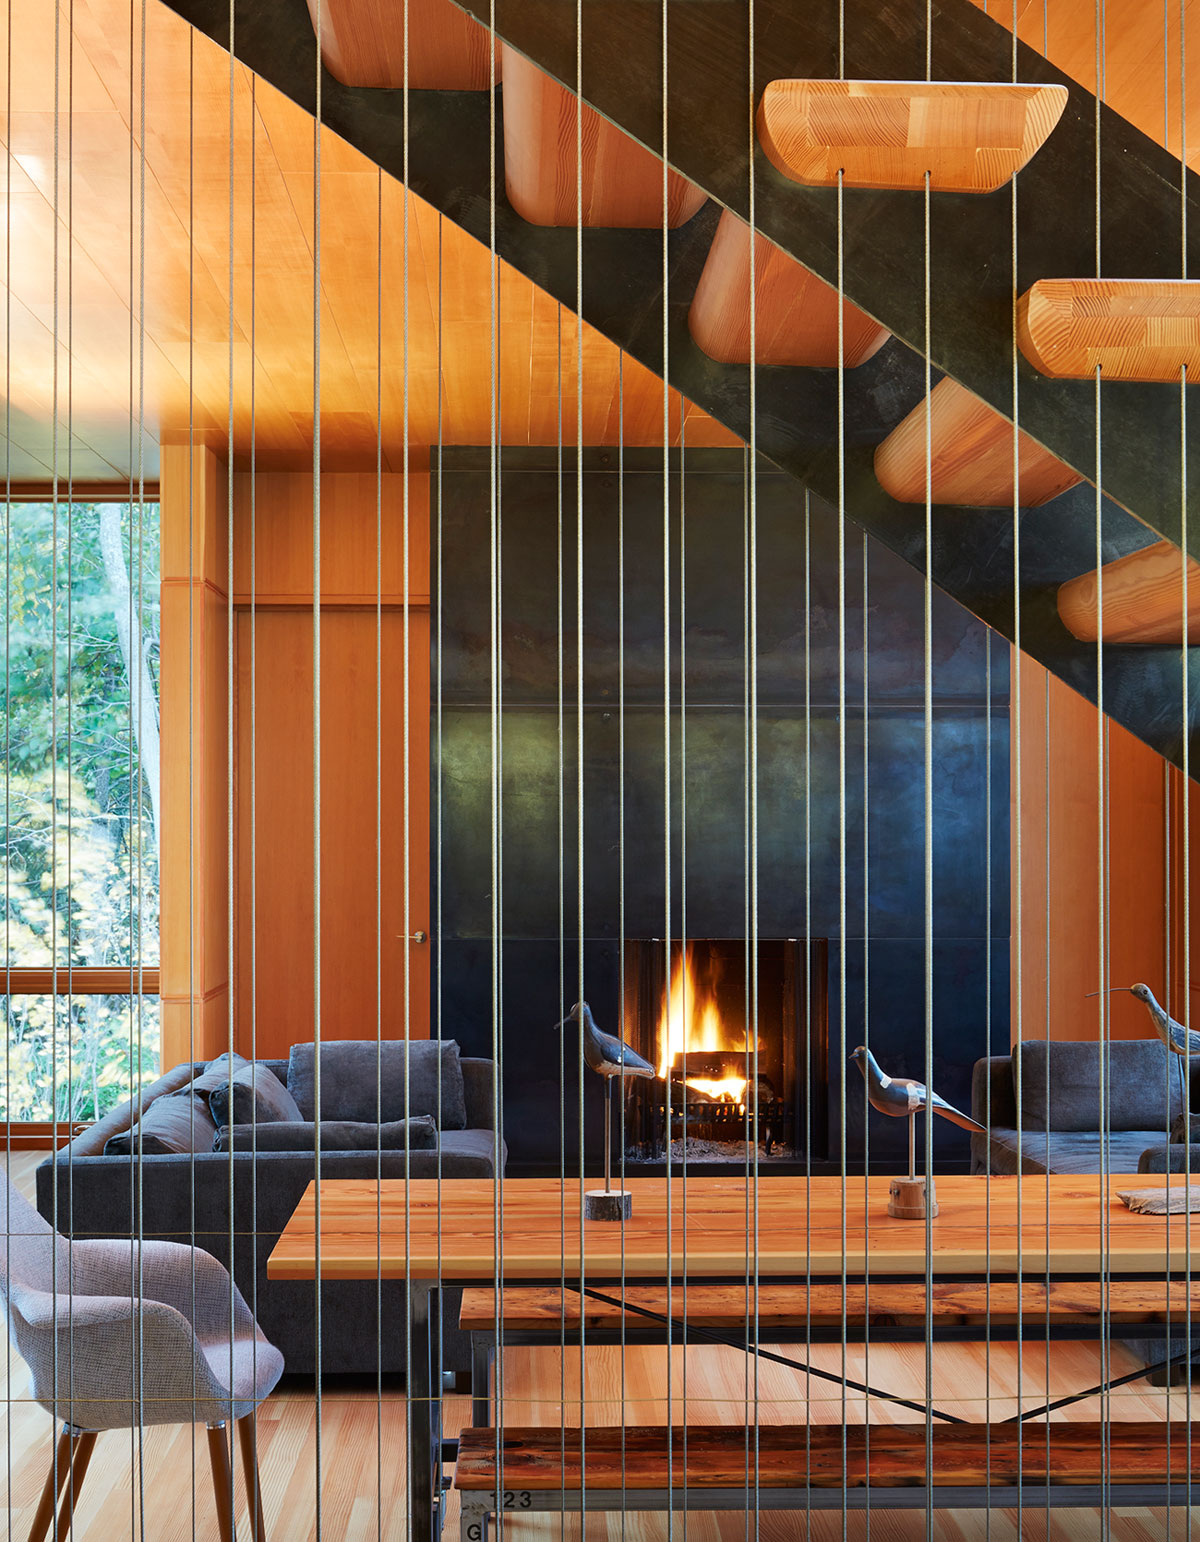 Tranquility and Simplicity Core Elements of Suns End Retreat in Harbert Michigan by Wheeler Kearns Architects-15